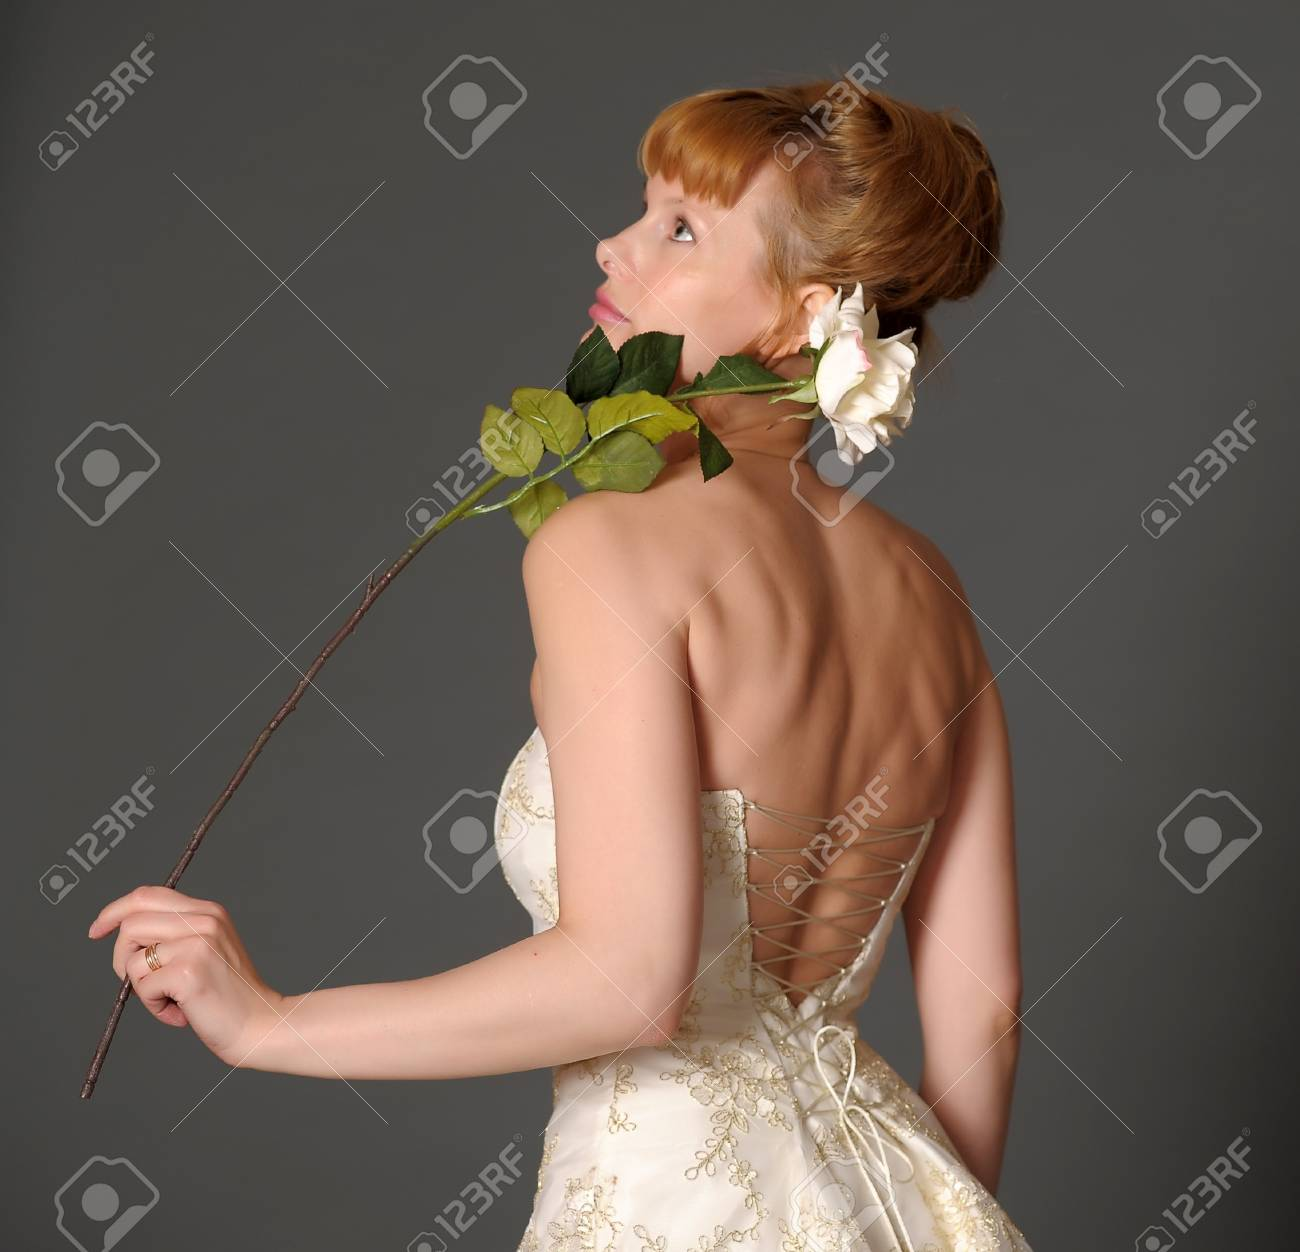 woman in a wedding dress on a gray background Stock Photo - 9729754